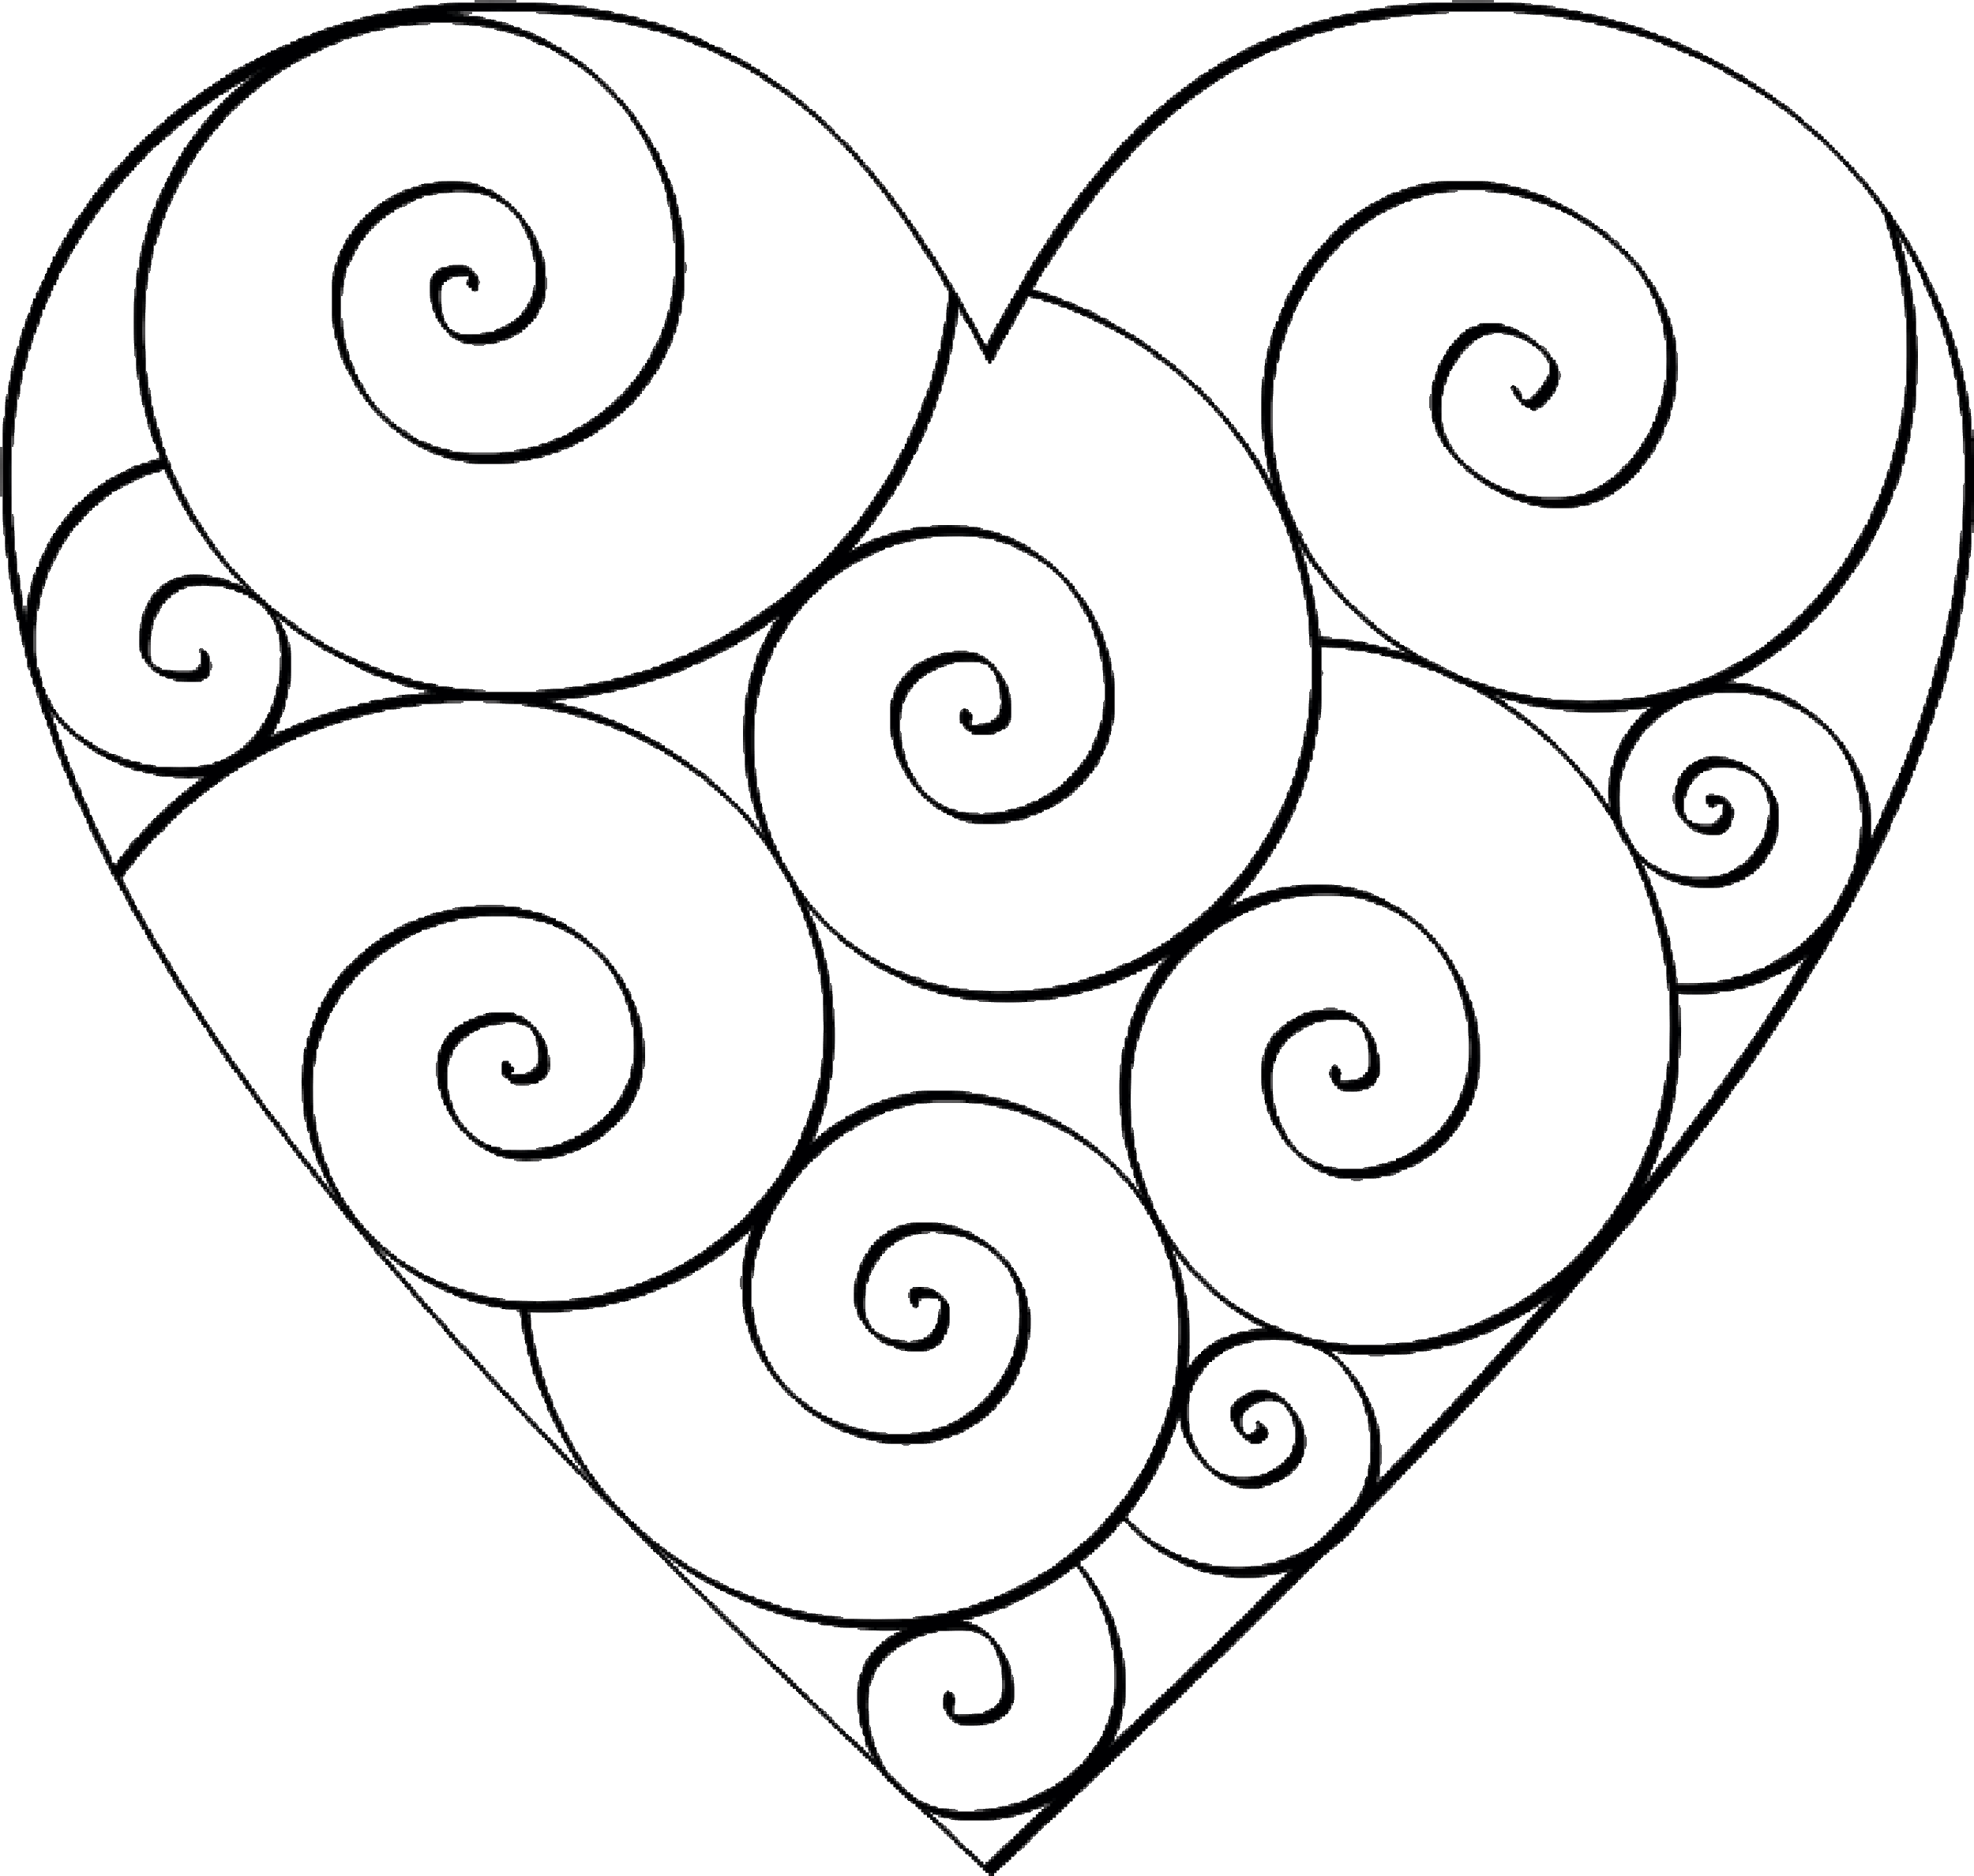 coloring pictures of hearts easy heart coloring pages for kids stripe patterns pictures hearts coloring of